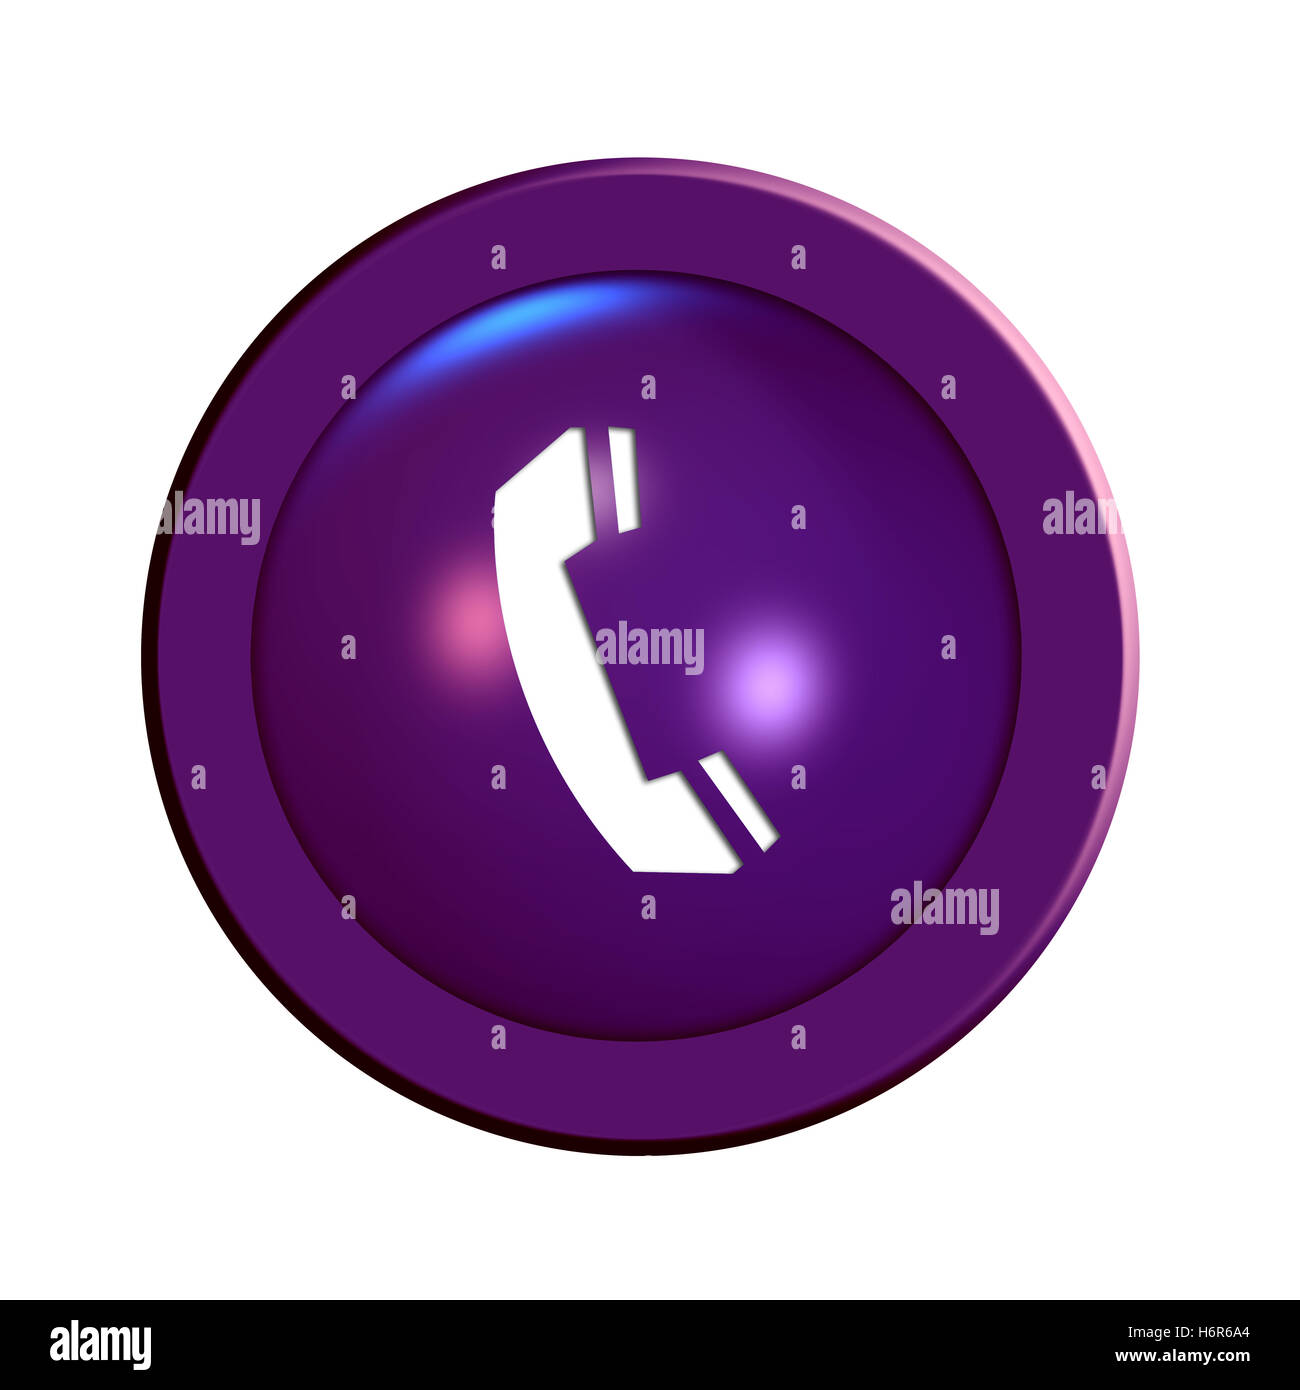 phone button Stock Photo